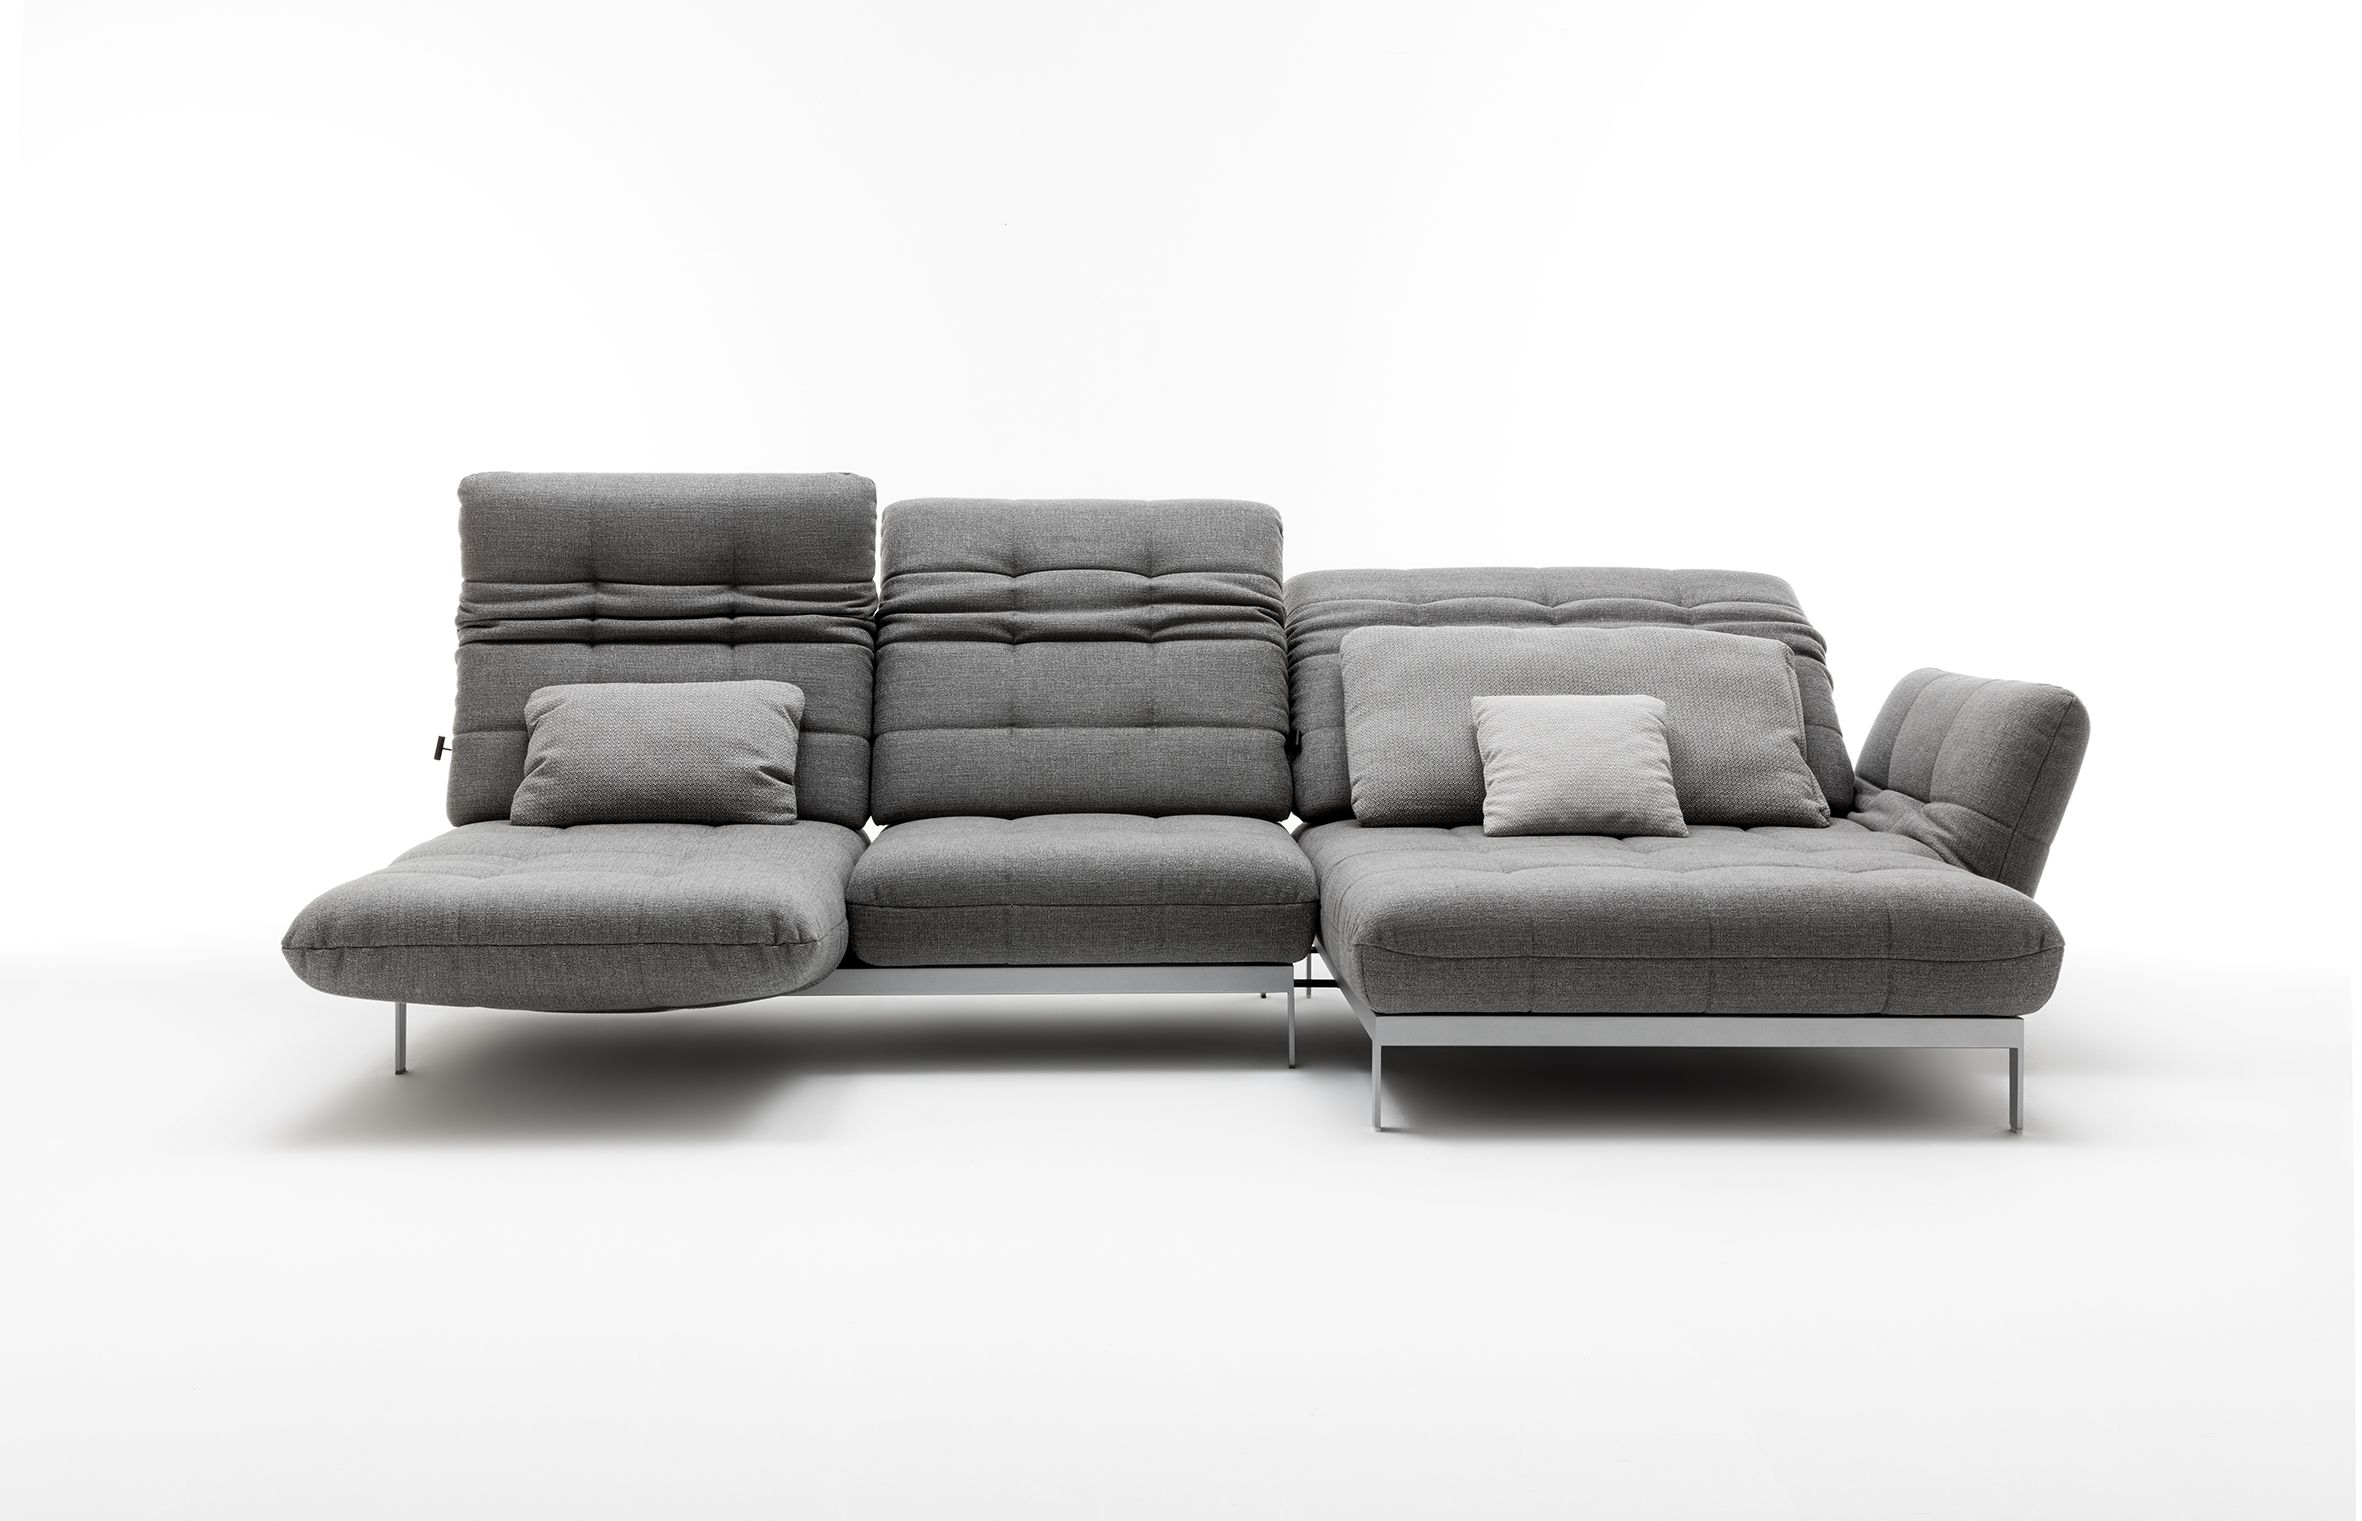 Recline, Relax, Lay Back In The Rolf Benz Agio Sofa Bed